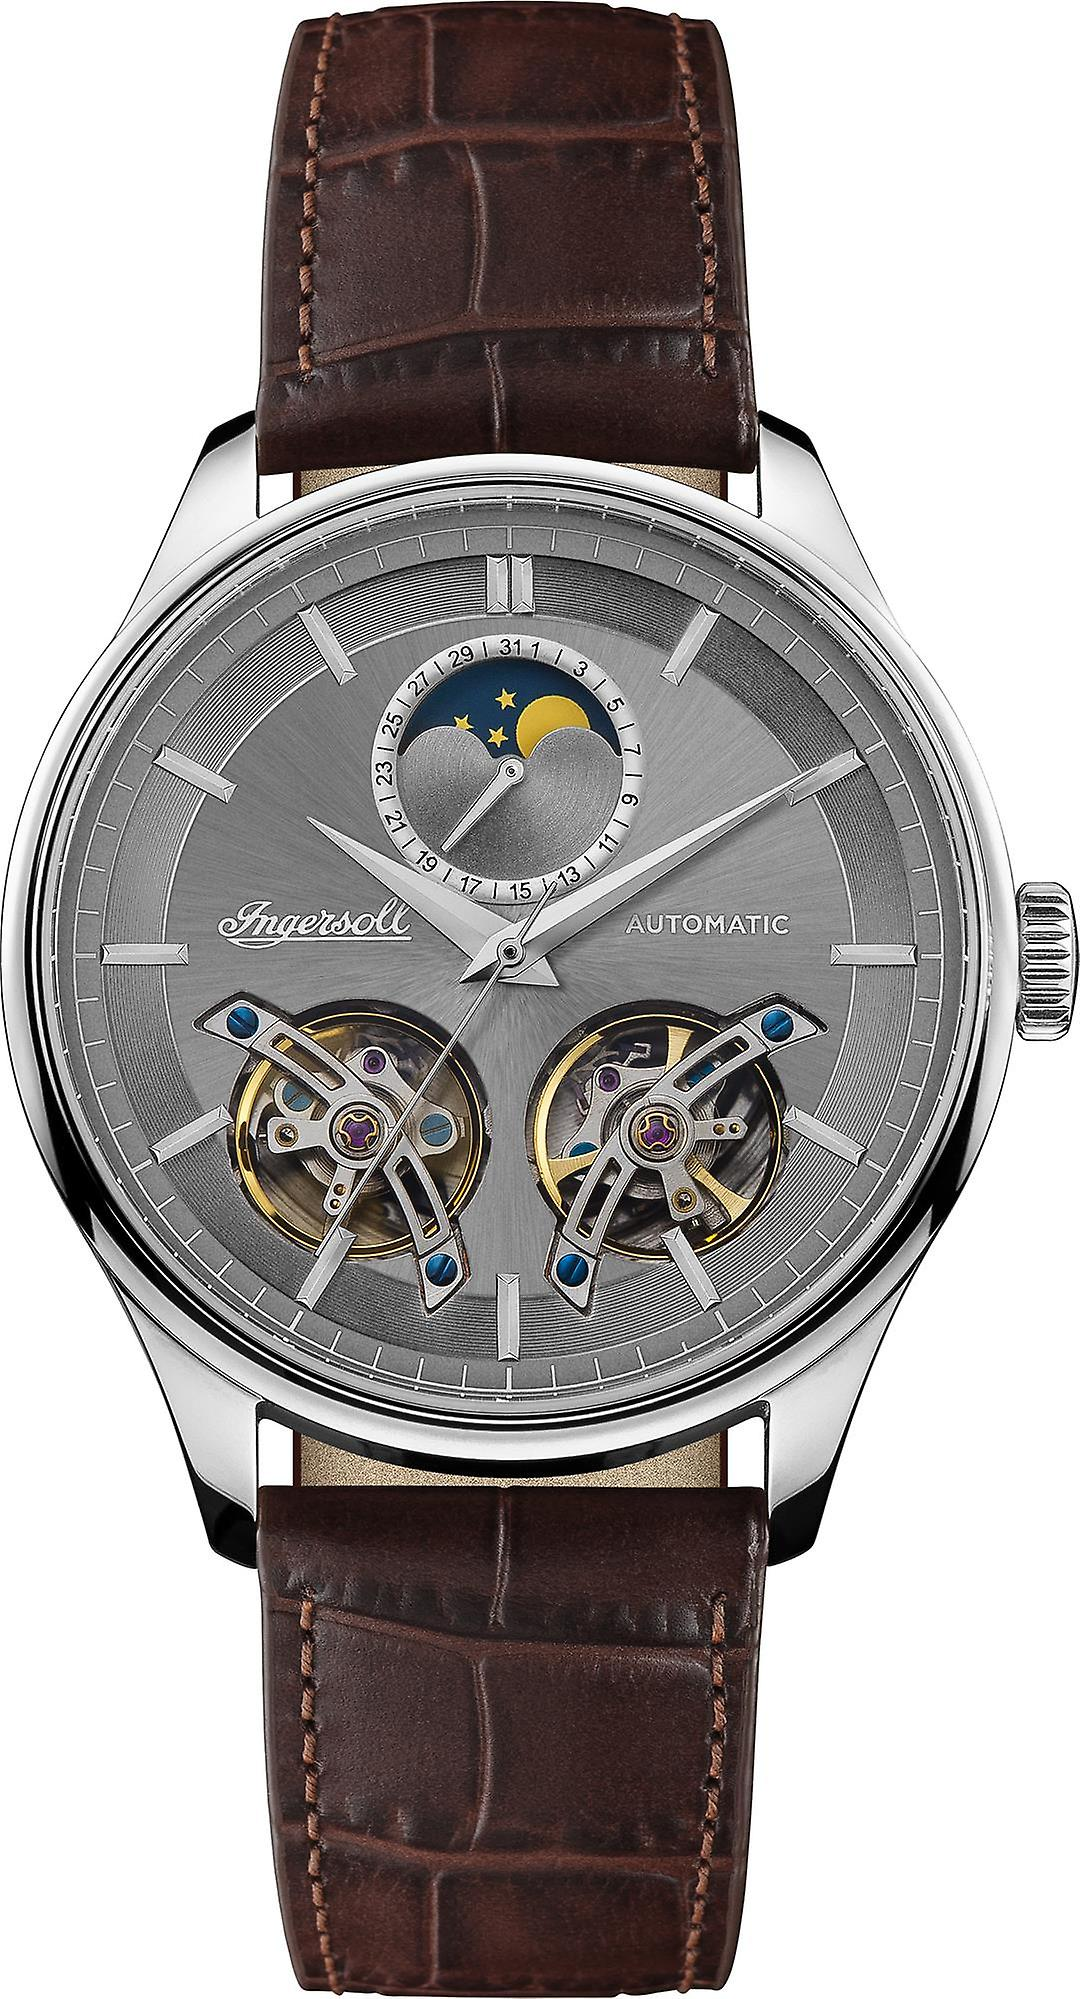 Ingersoll The Chord Automatic Silver Dial Sun Moon Subdial Leather Strap Mens Watch I07201 44mm